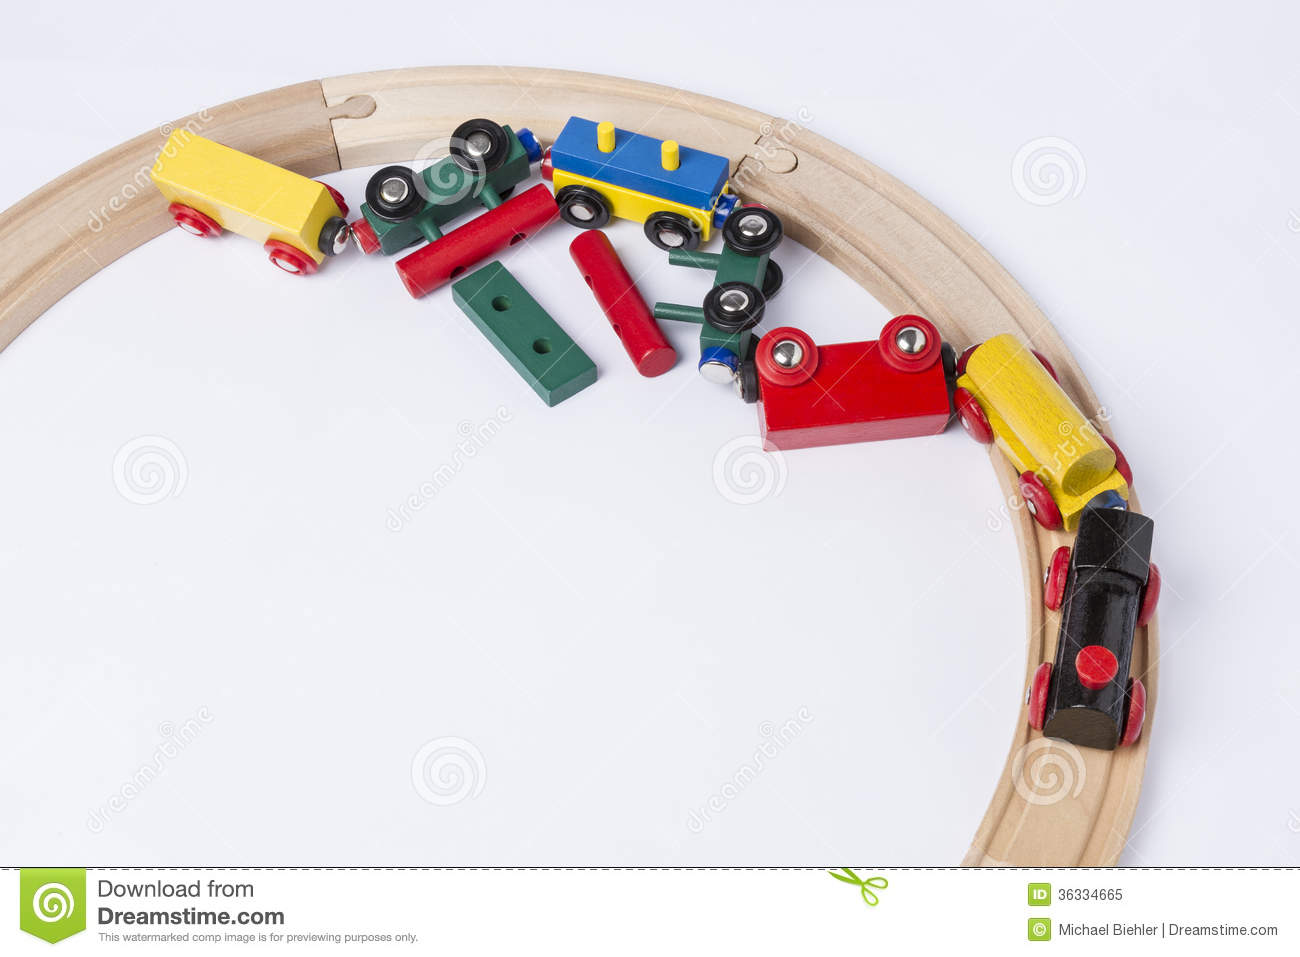 ... Download Woodworking Plans Train Table. on wooden train set plans